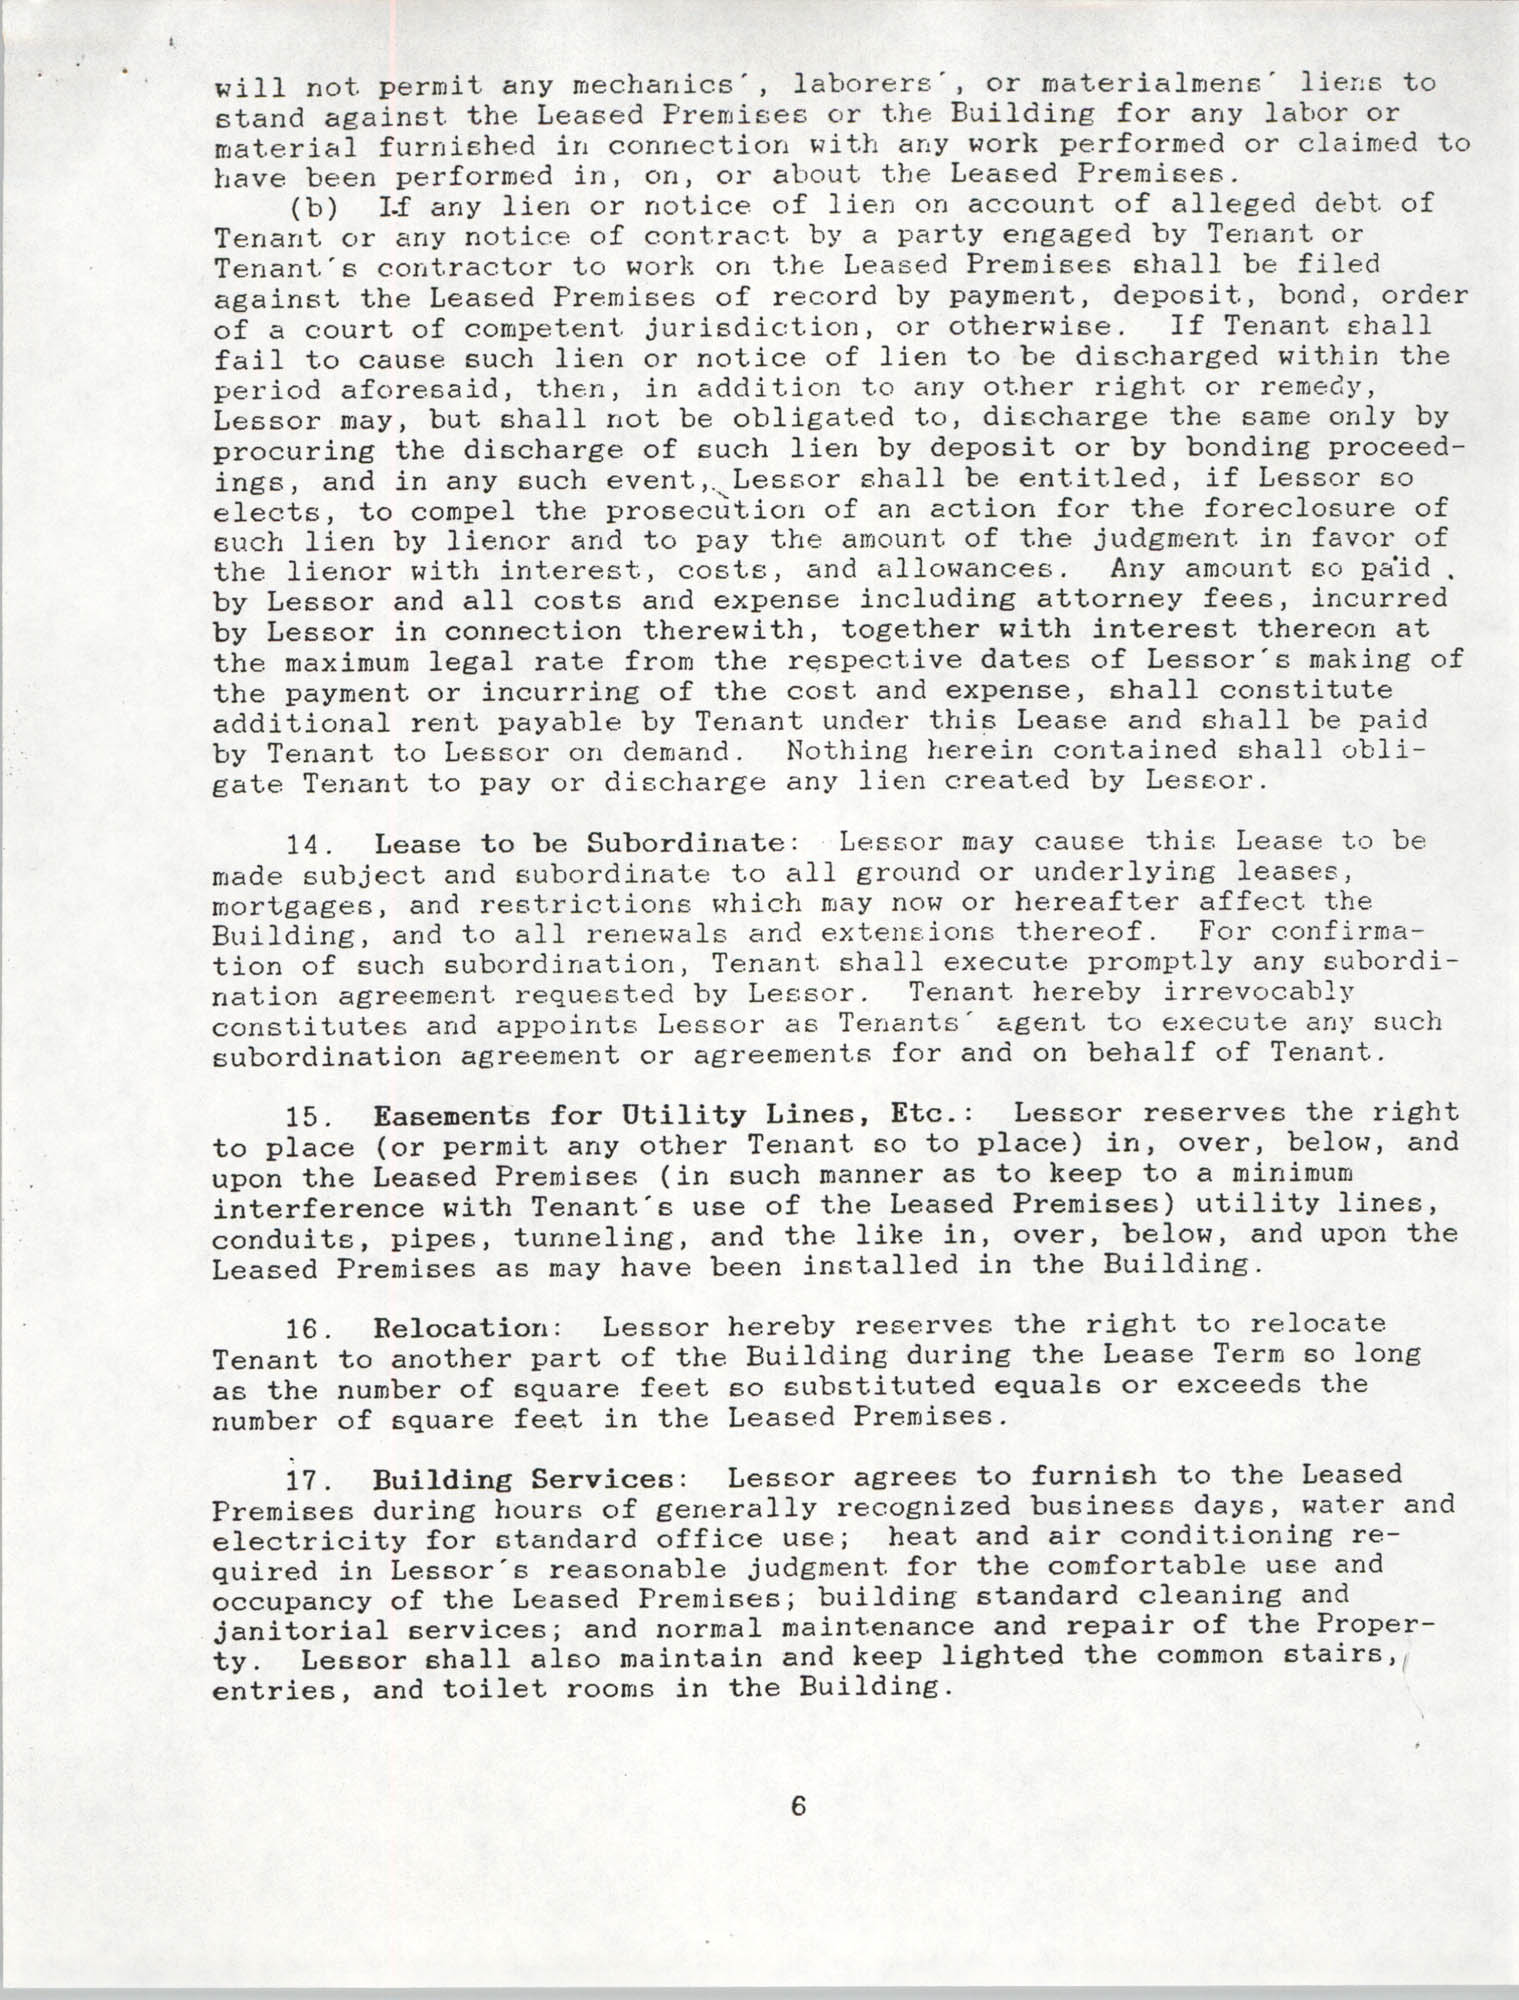 Charleston Branch of the NAACP Leasing Agreement, June 1991 to June 1994, Page 6